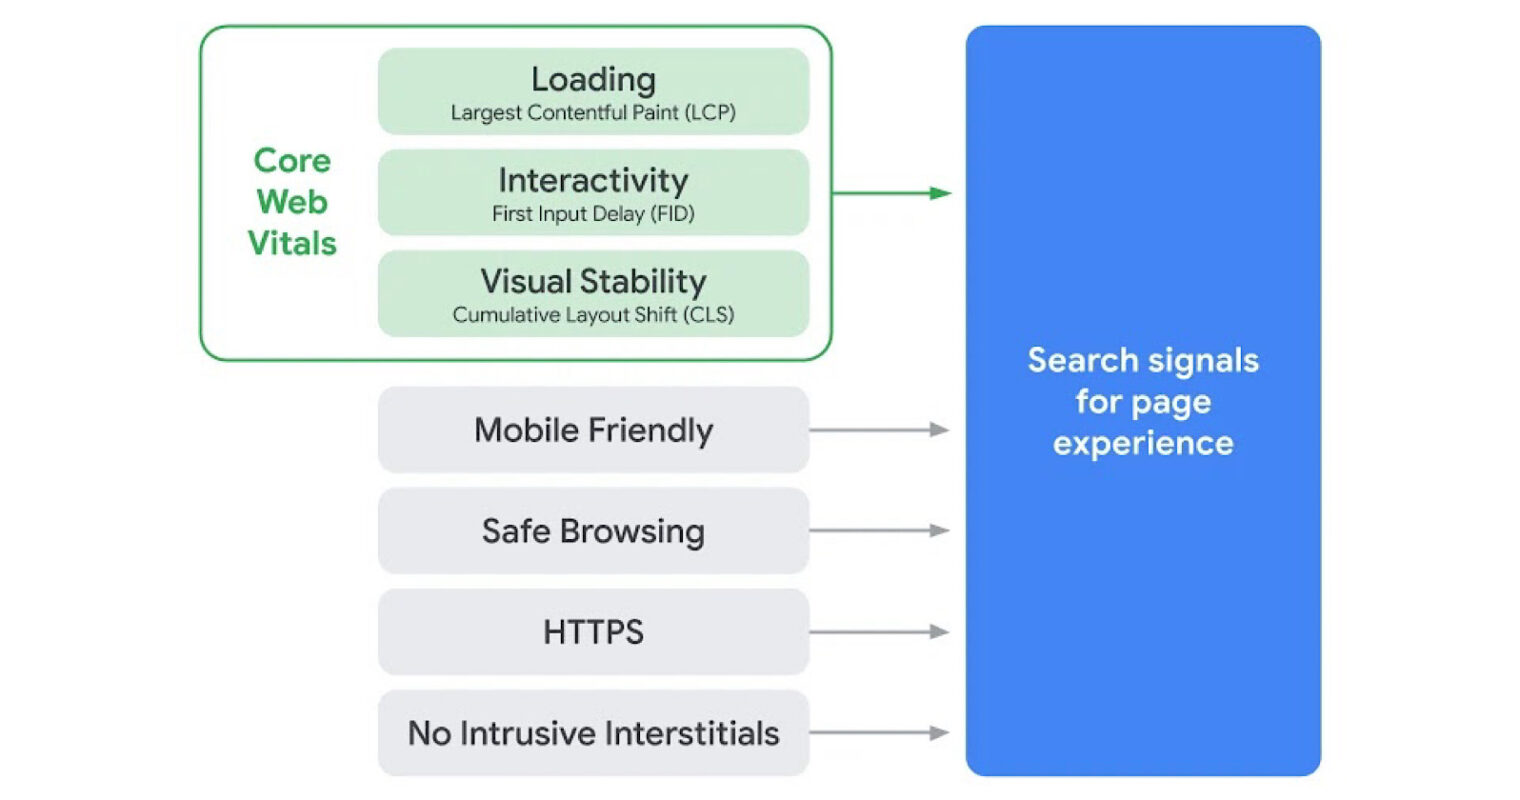 Google: Core Web Vitals will become ranking signals in May 2021